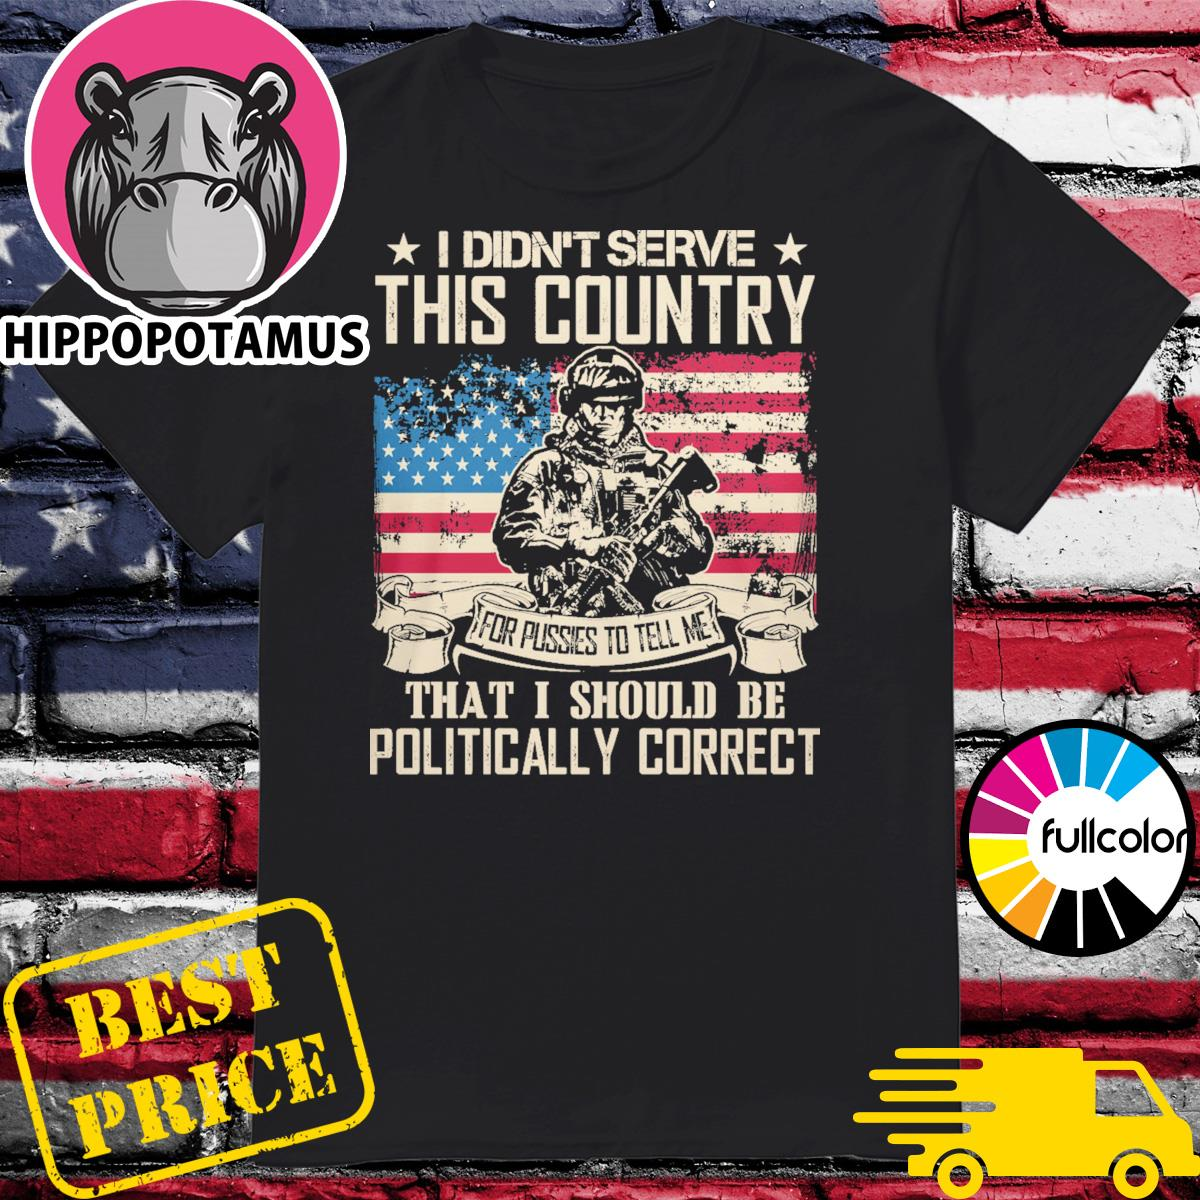 Veteran I didn't serve this country for pussies to tell me that I should be Politically Correct shirt